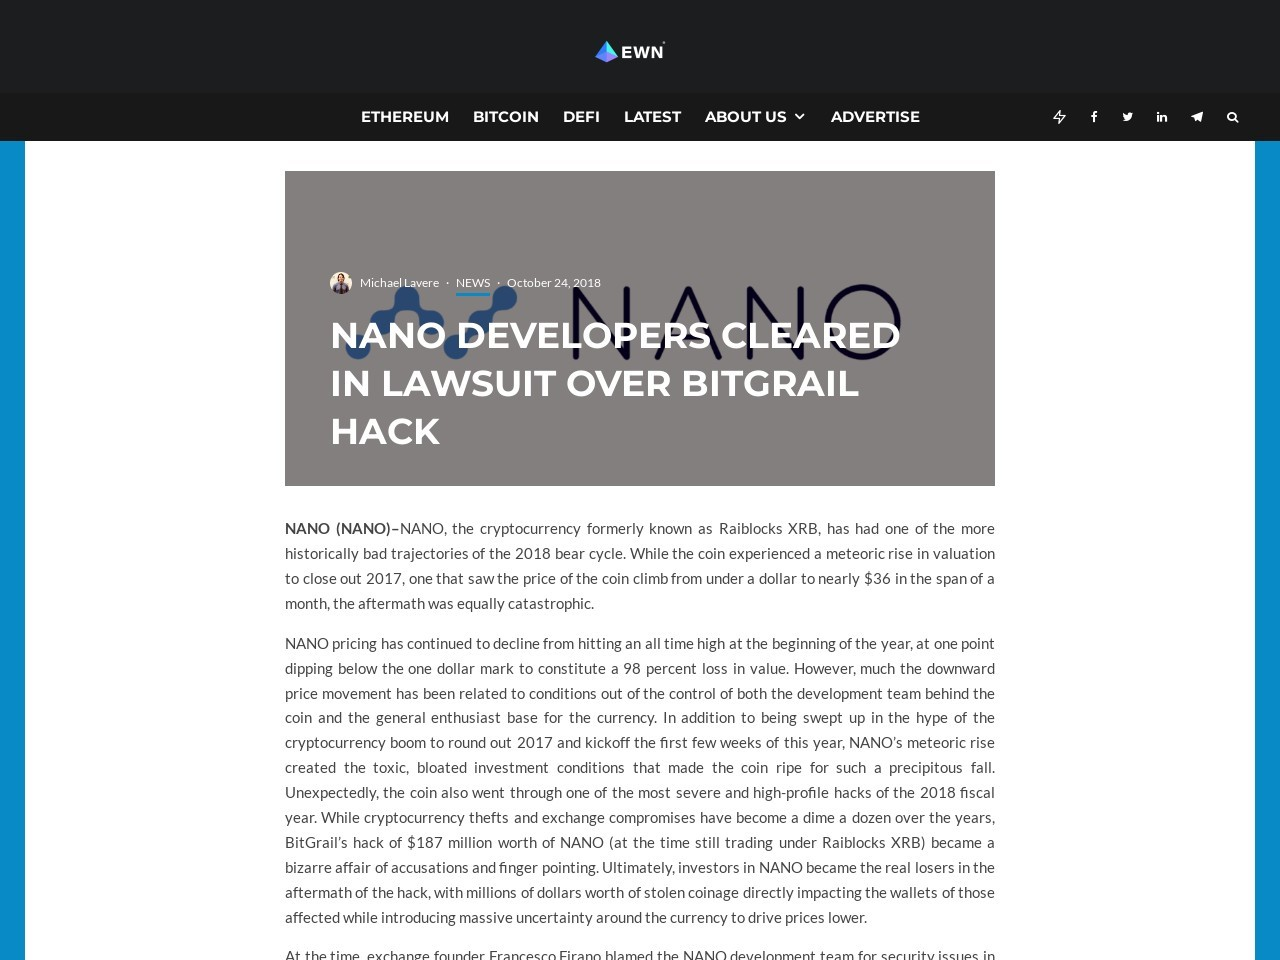 NANO Developers Cleared in Lawsuit over BitGrail Hack